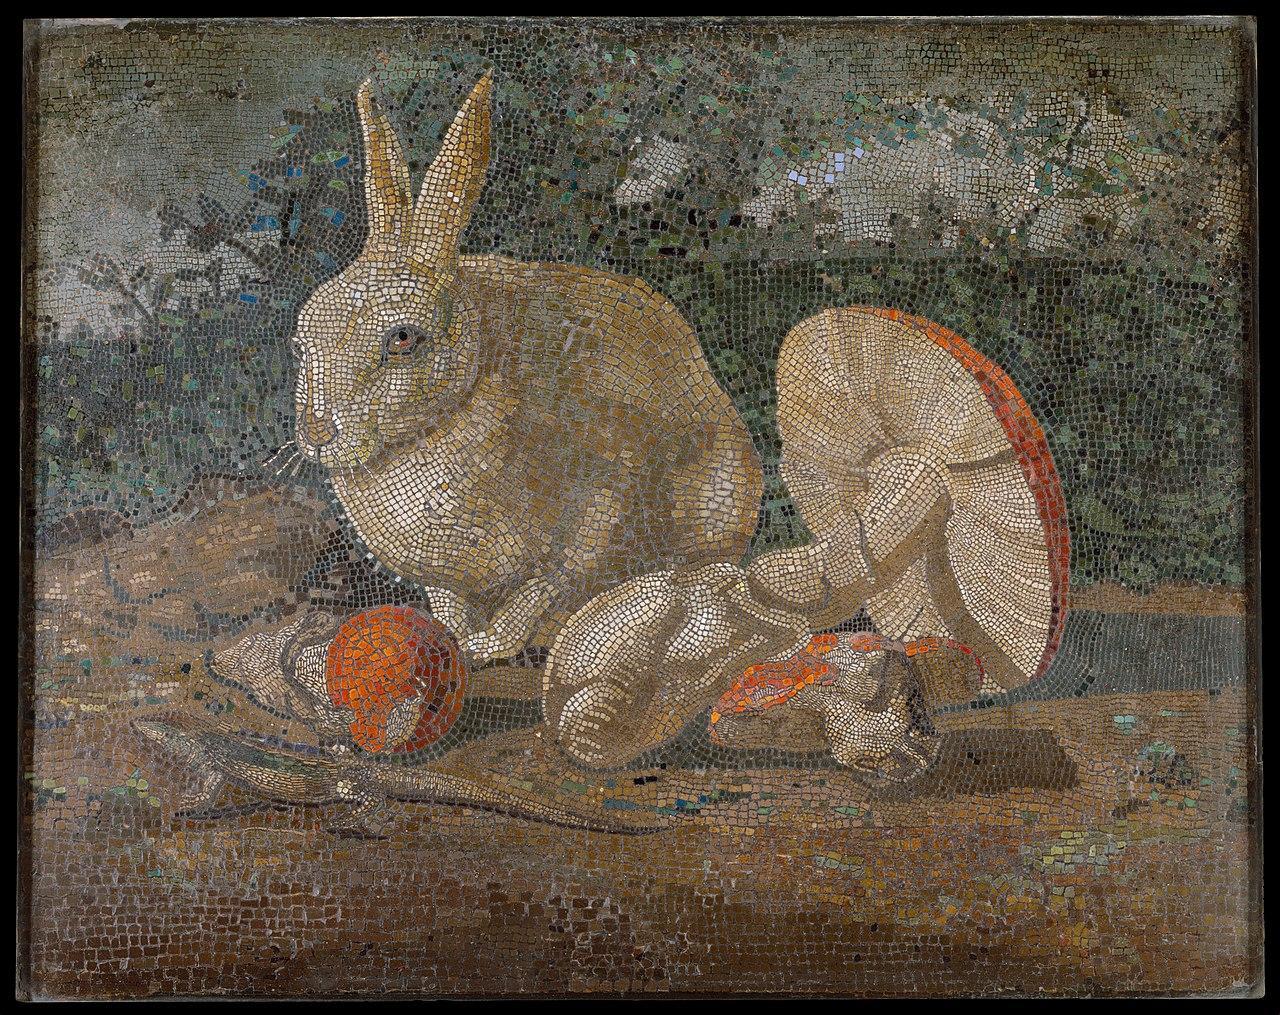 File Tile Mosaic With Rabbit Lizard And Mushroom Met